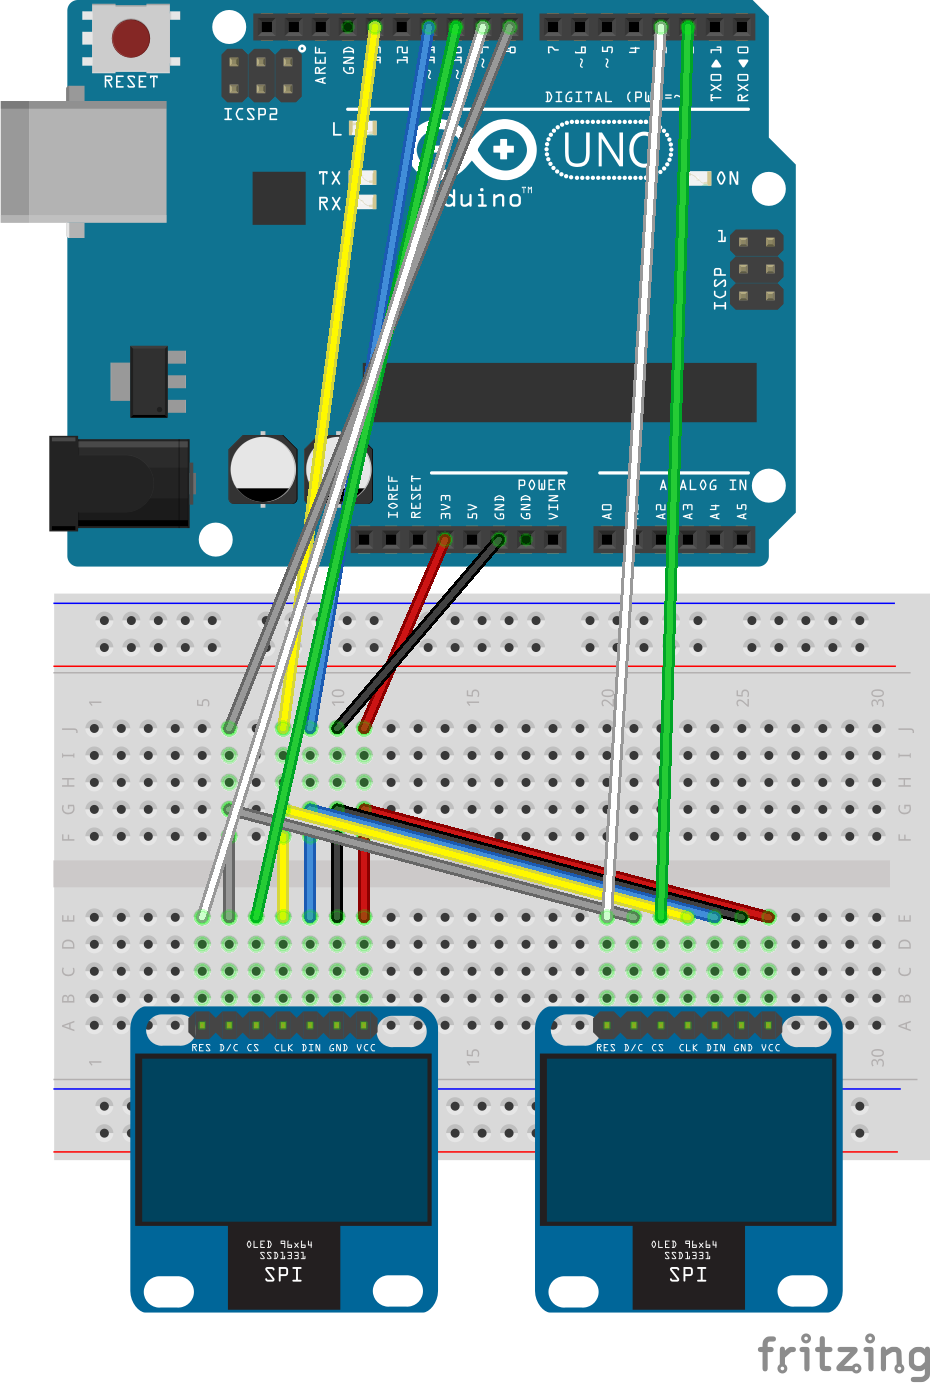 Library of OLED modules connect with SSD1331(SPI bus) for